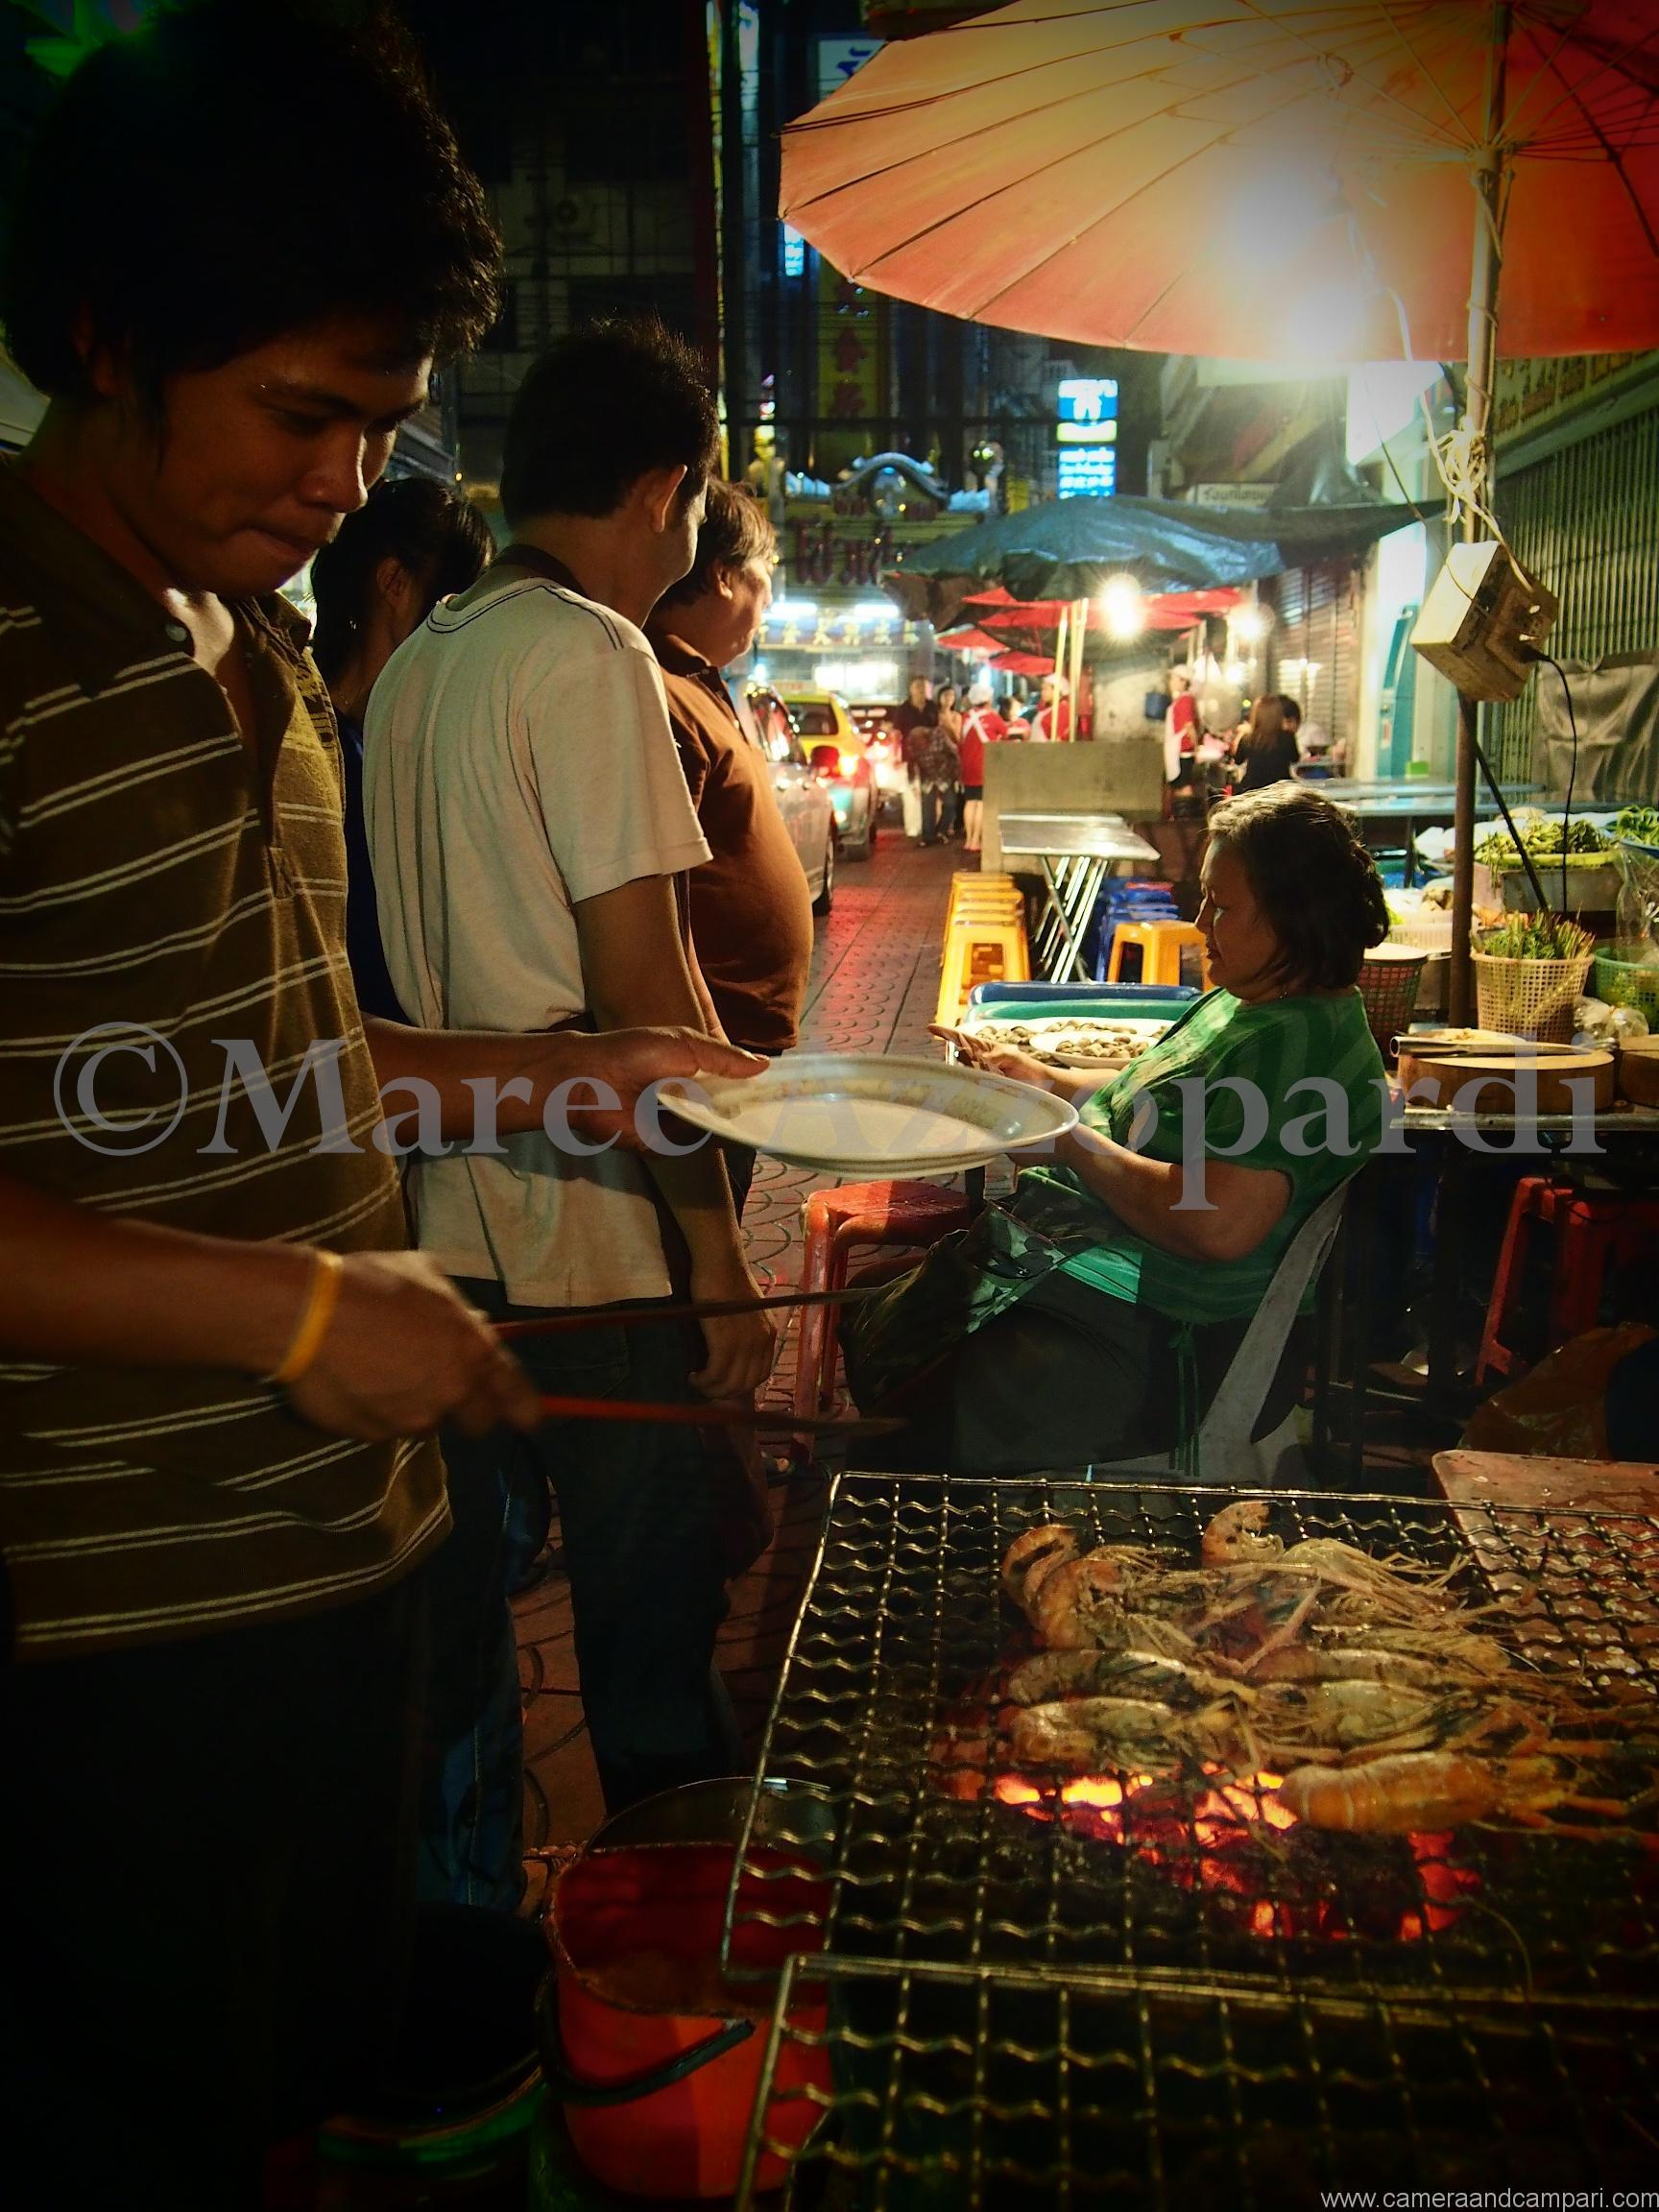 Street food being cooked in Bangkok